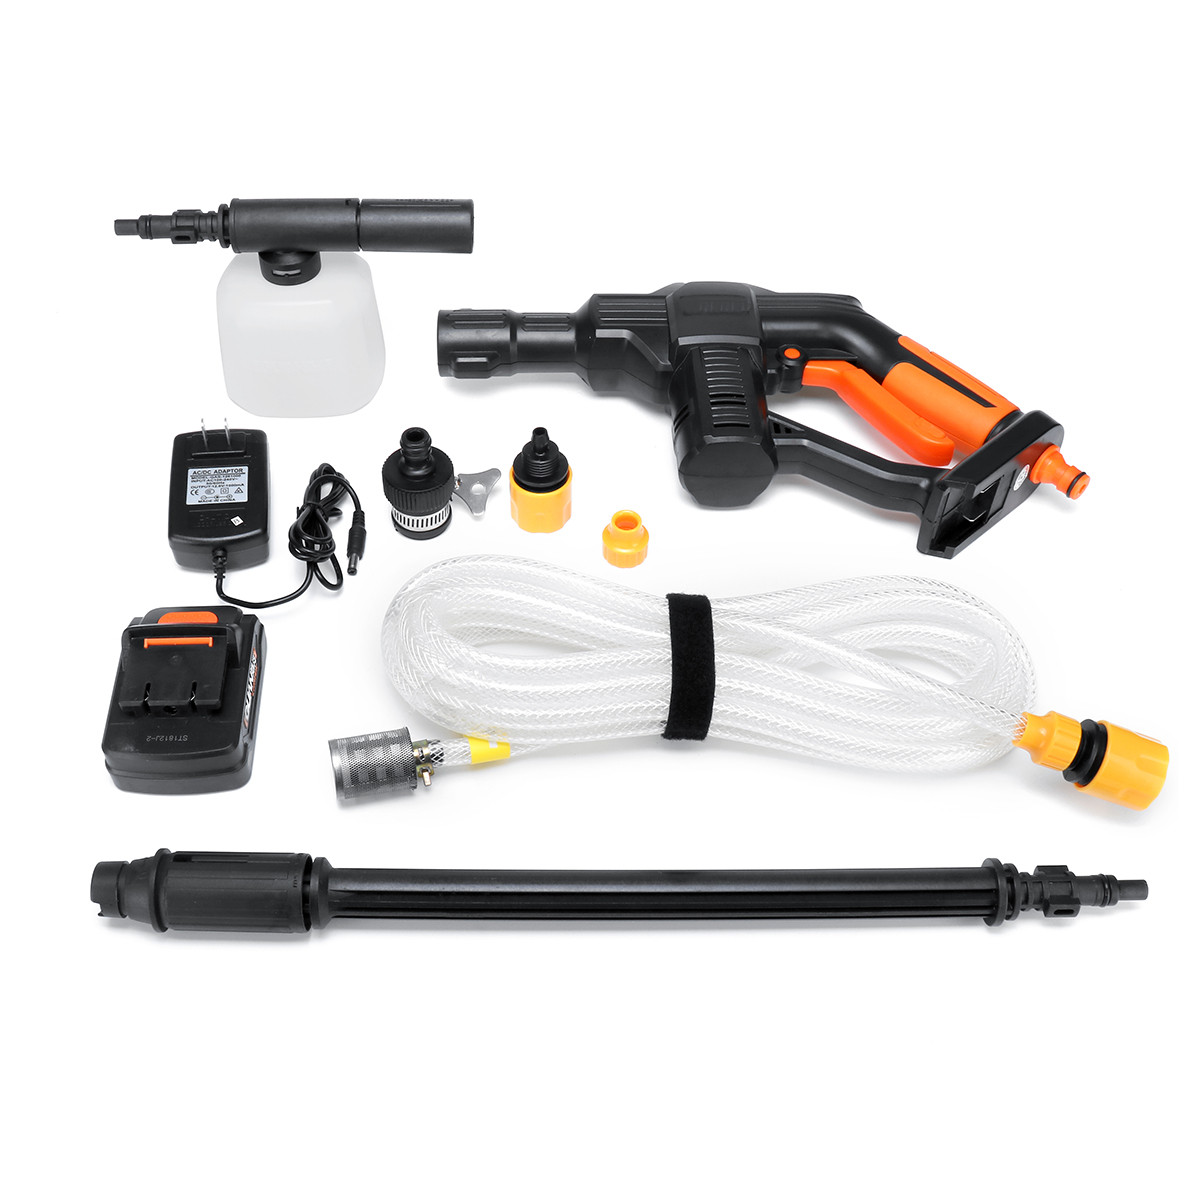 21V Wireless High Pressure Cleaner Universal 1/4 Fitting Cordless Portable Pressure Cleaner Auto Car Wash Maintenance Tool